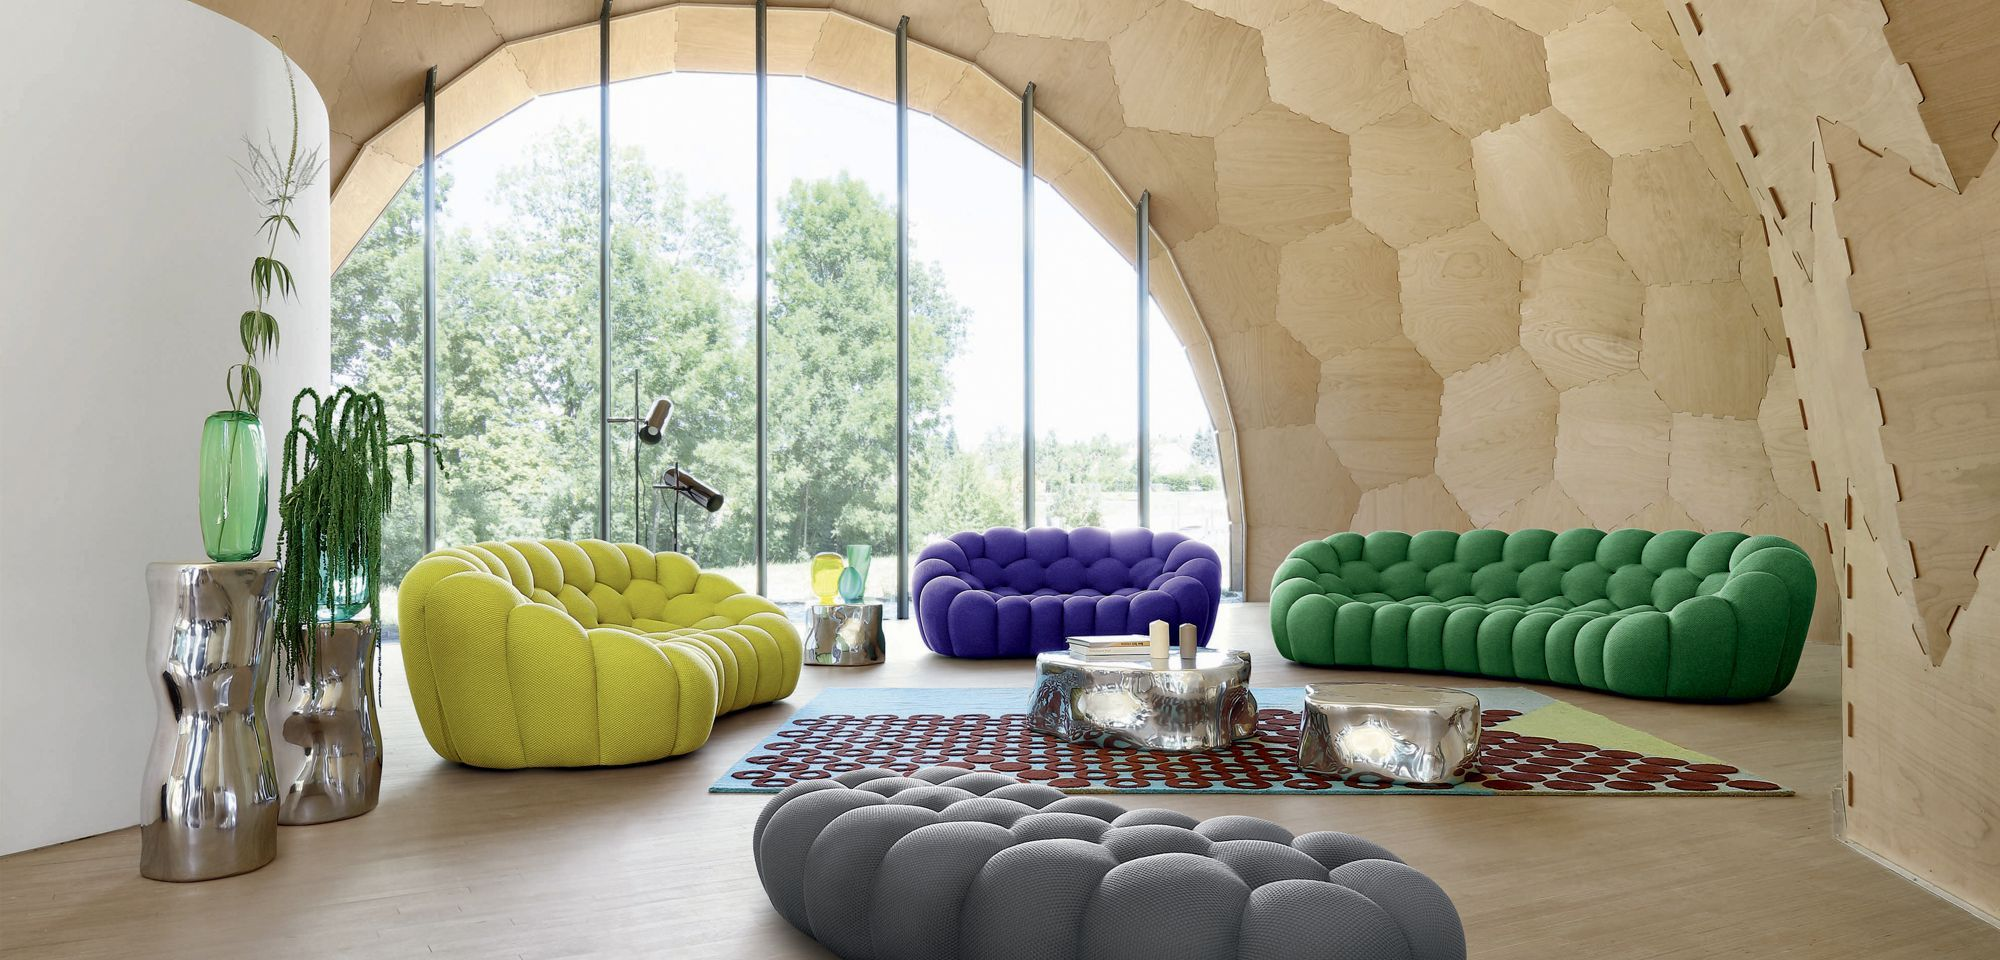 BUBBLE 2 CURVED 3 4 SEAT SOFA Chairs & Seating Pinterest